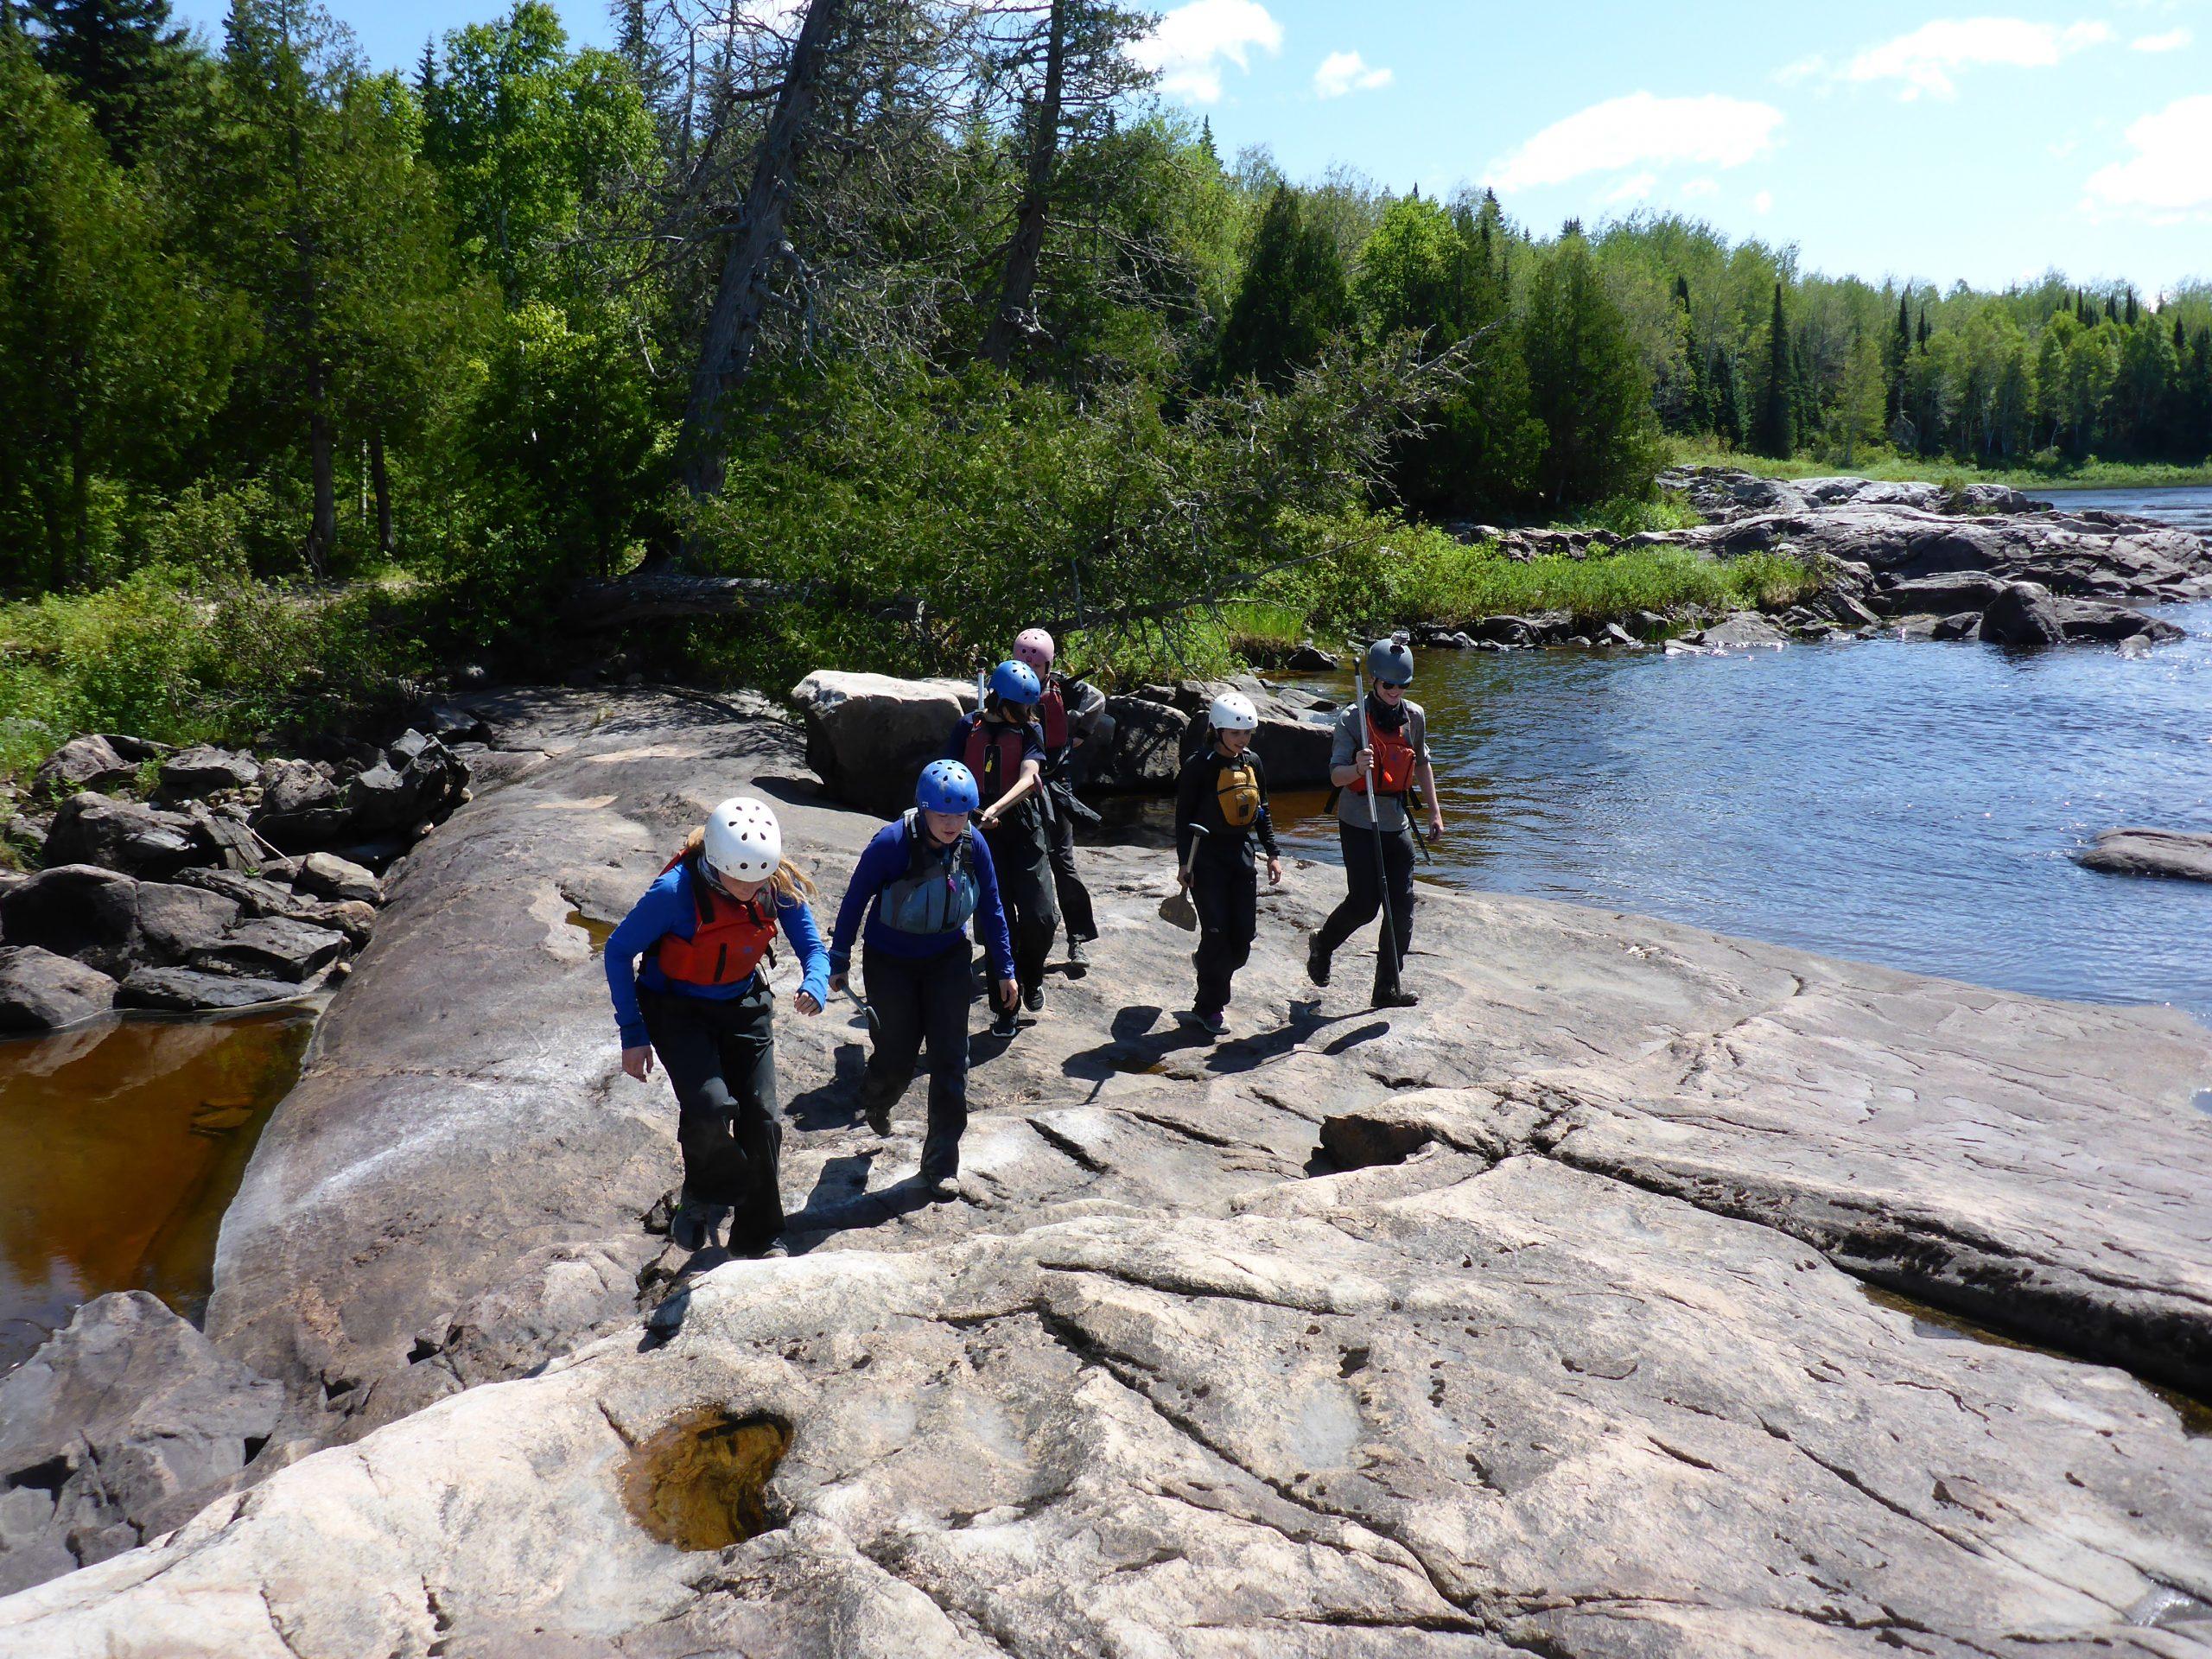 Scouting a Rapid before a potential portage